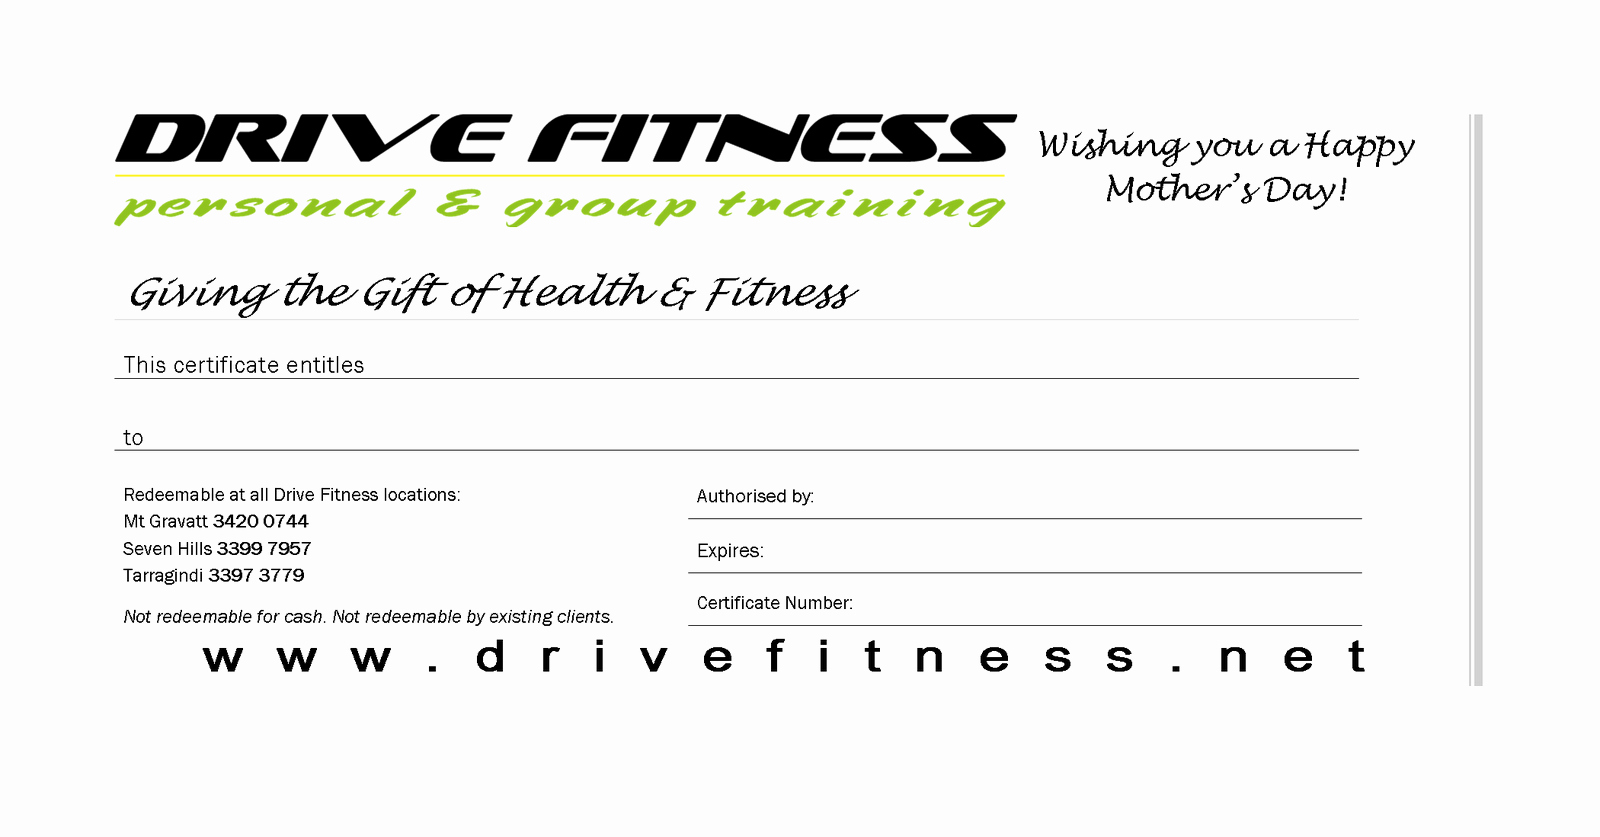 Fitness Gift Certificate Template Inspirational Drive Fitness Blog Mother S Day Gift Certificates